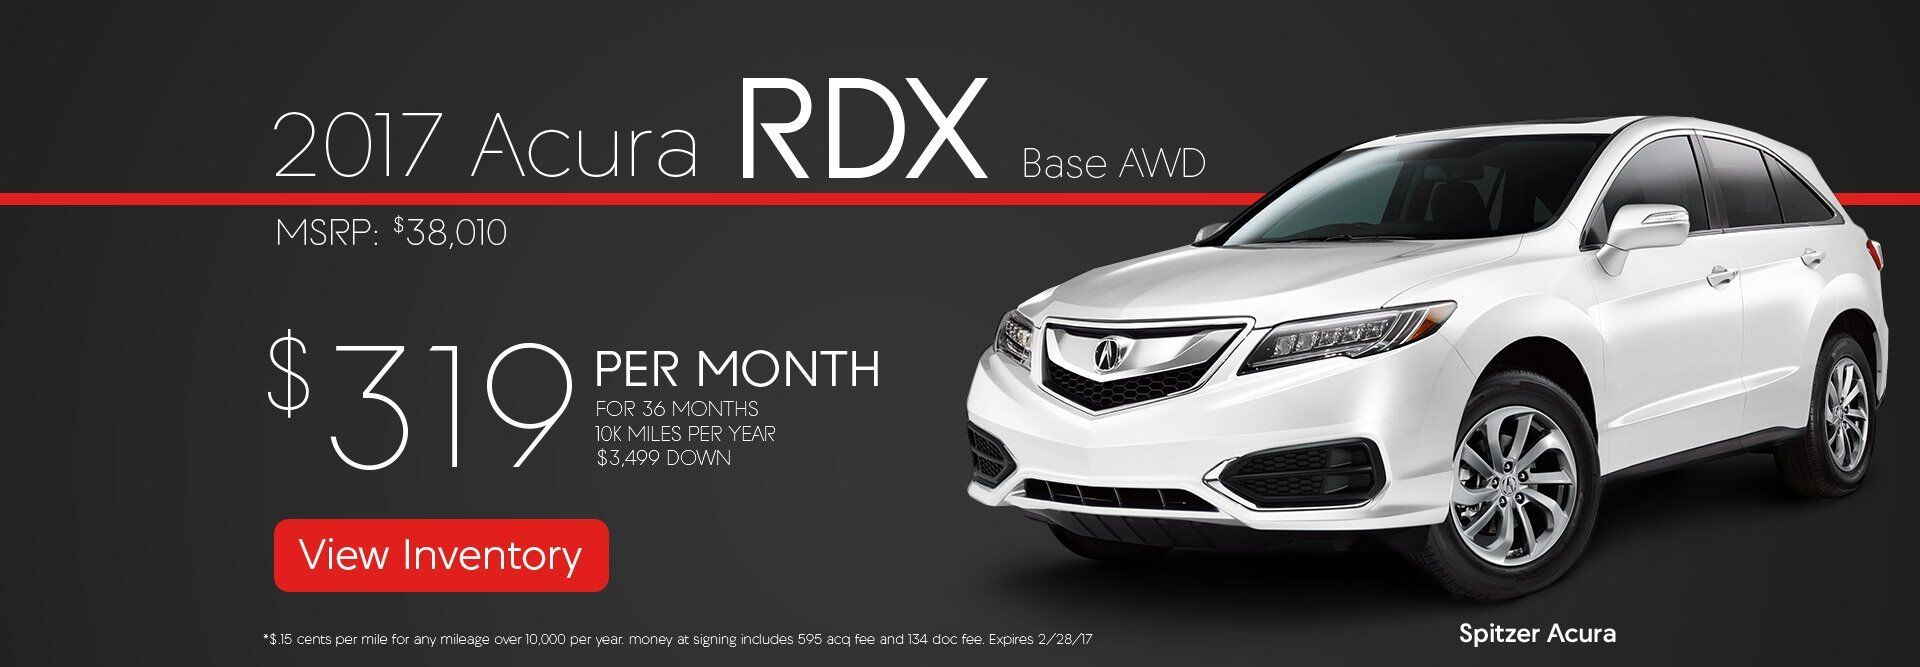 RDX Base AWD